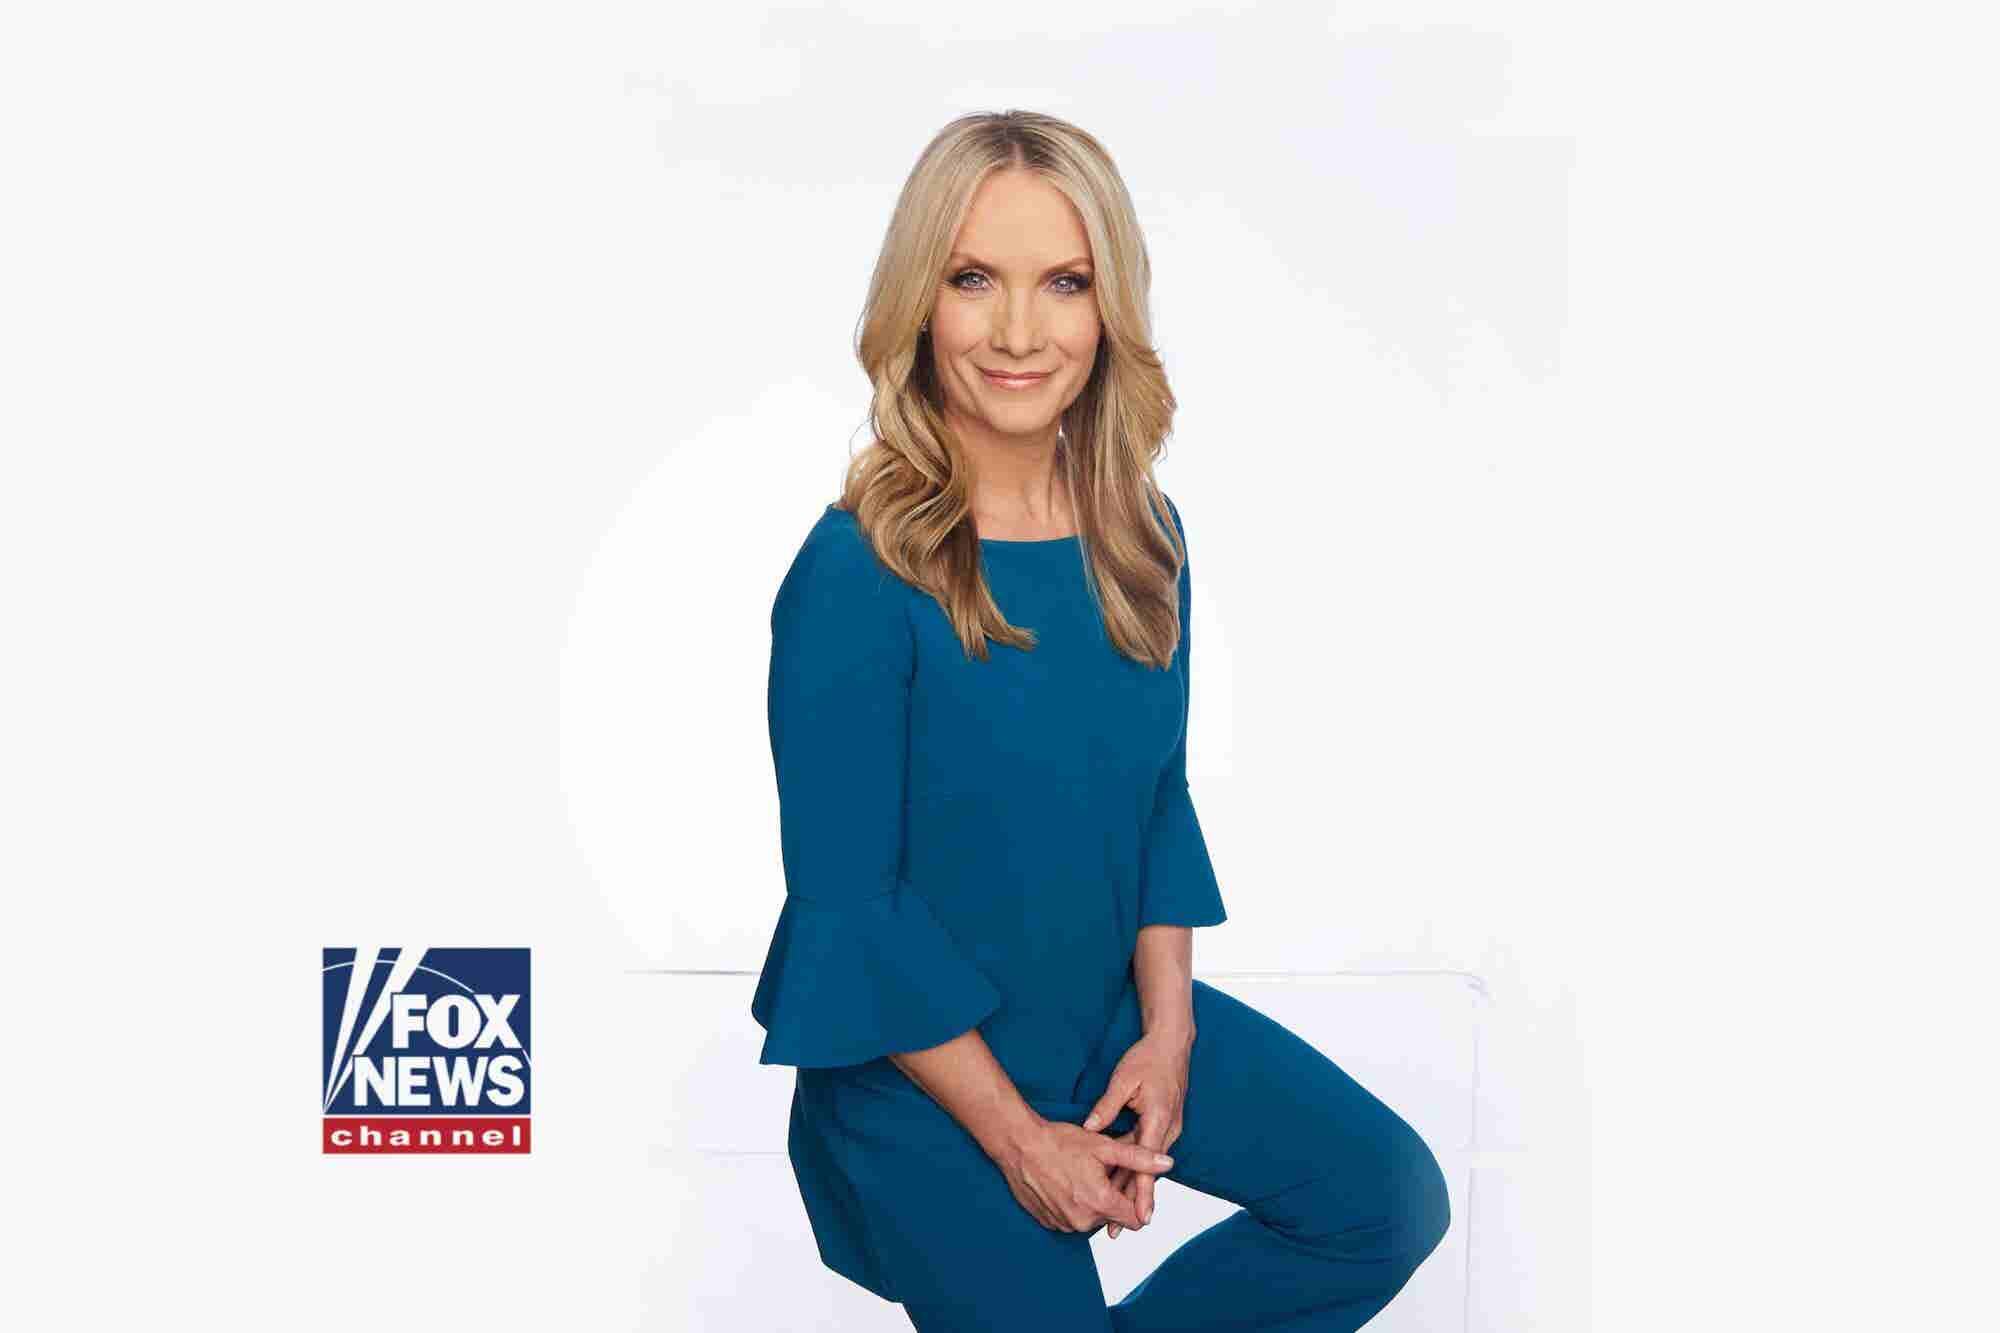 Dana Perino: 'The Only Clear Path to Success Is the One You Make'